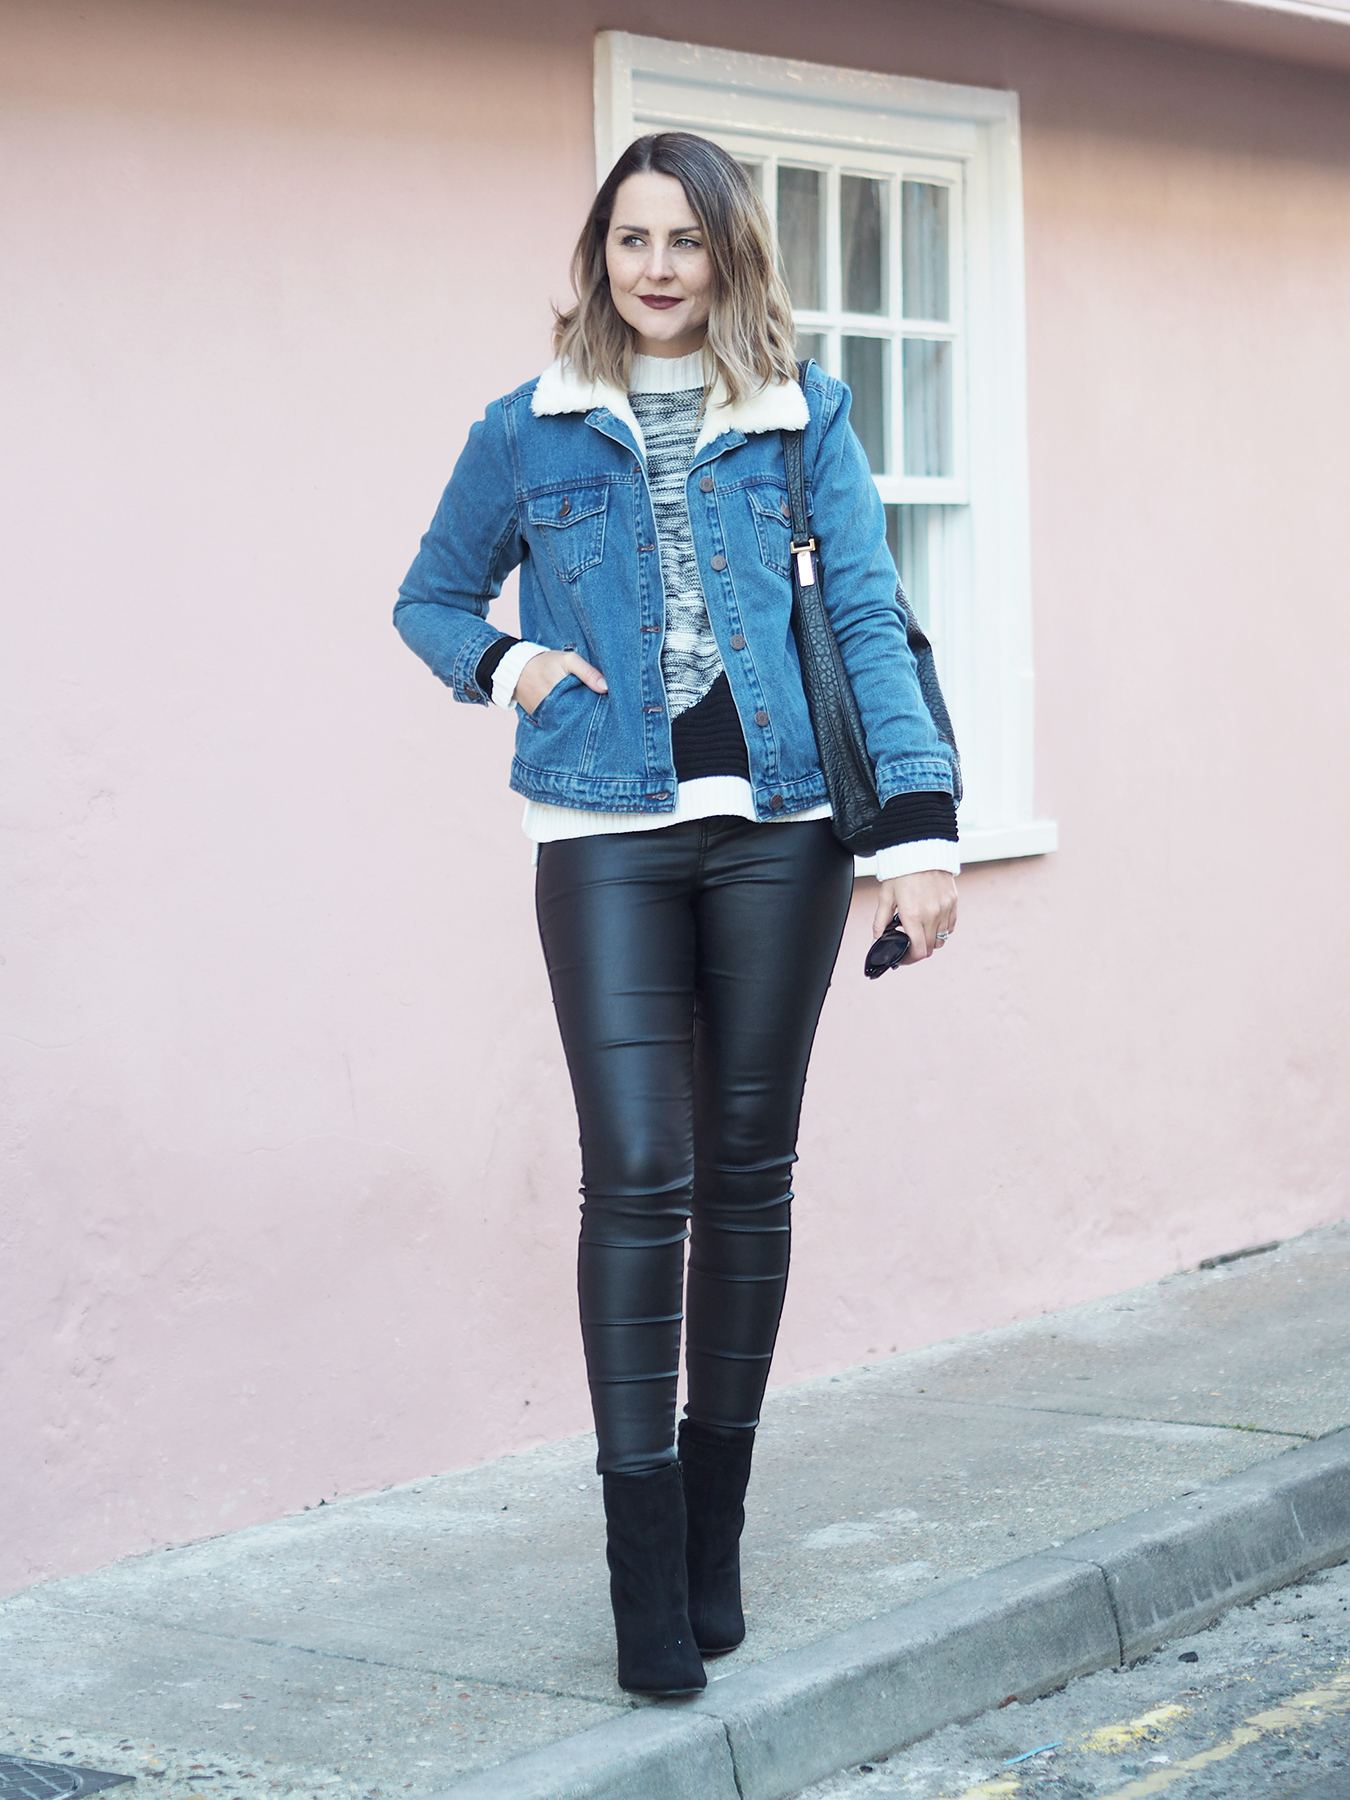 borg collar denim jacket outfit winter